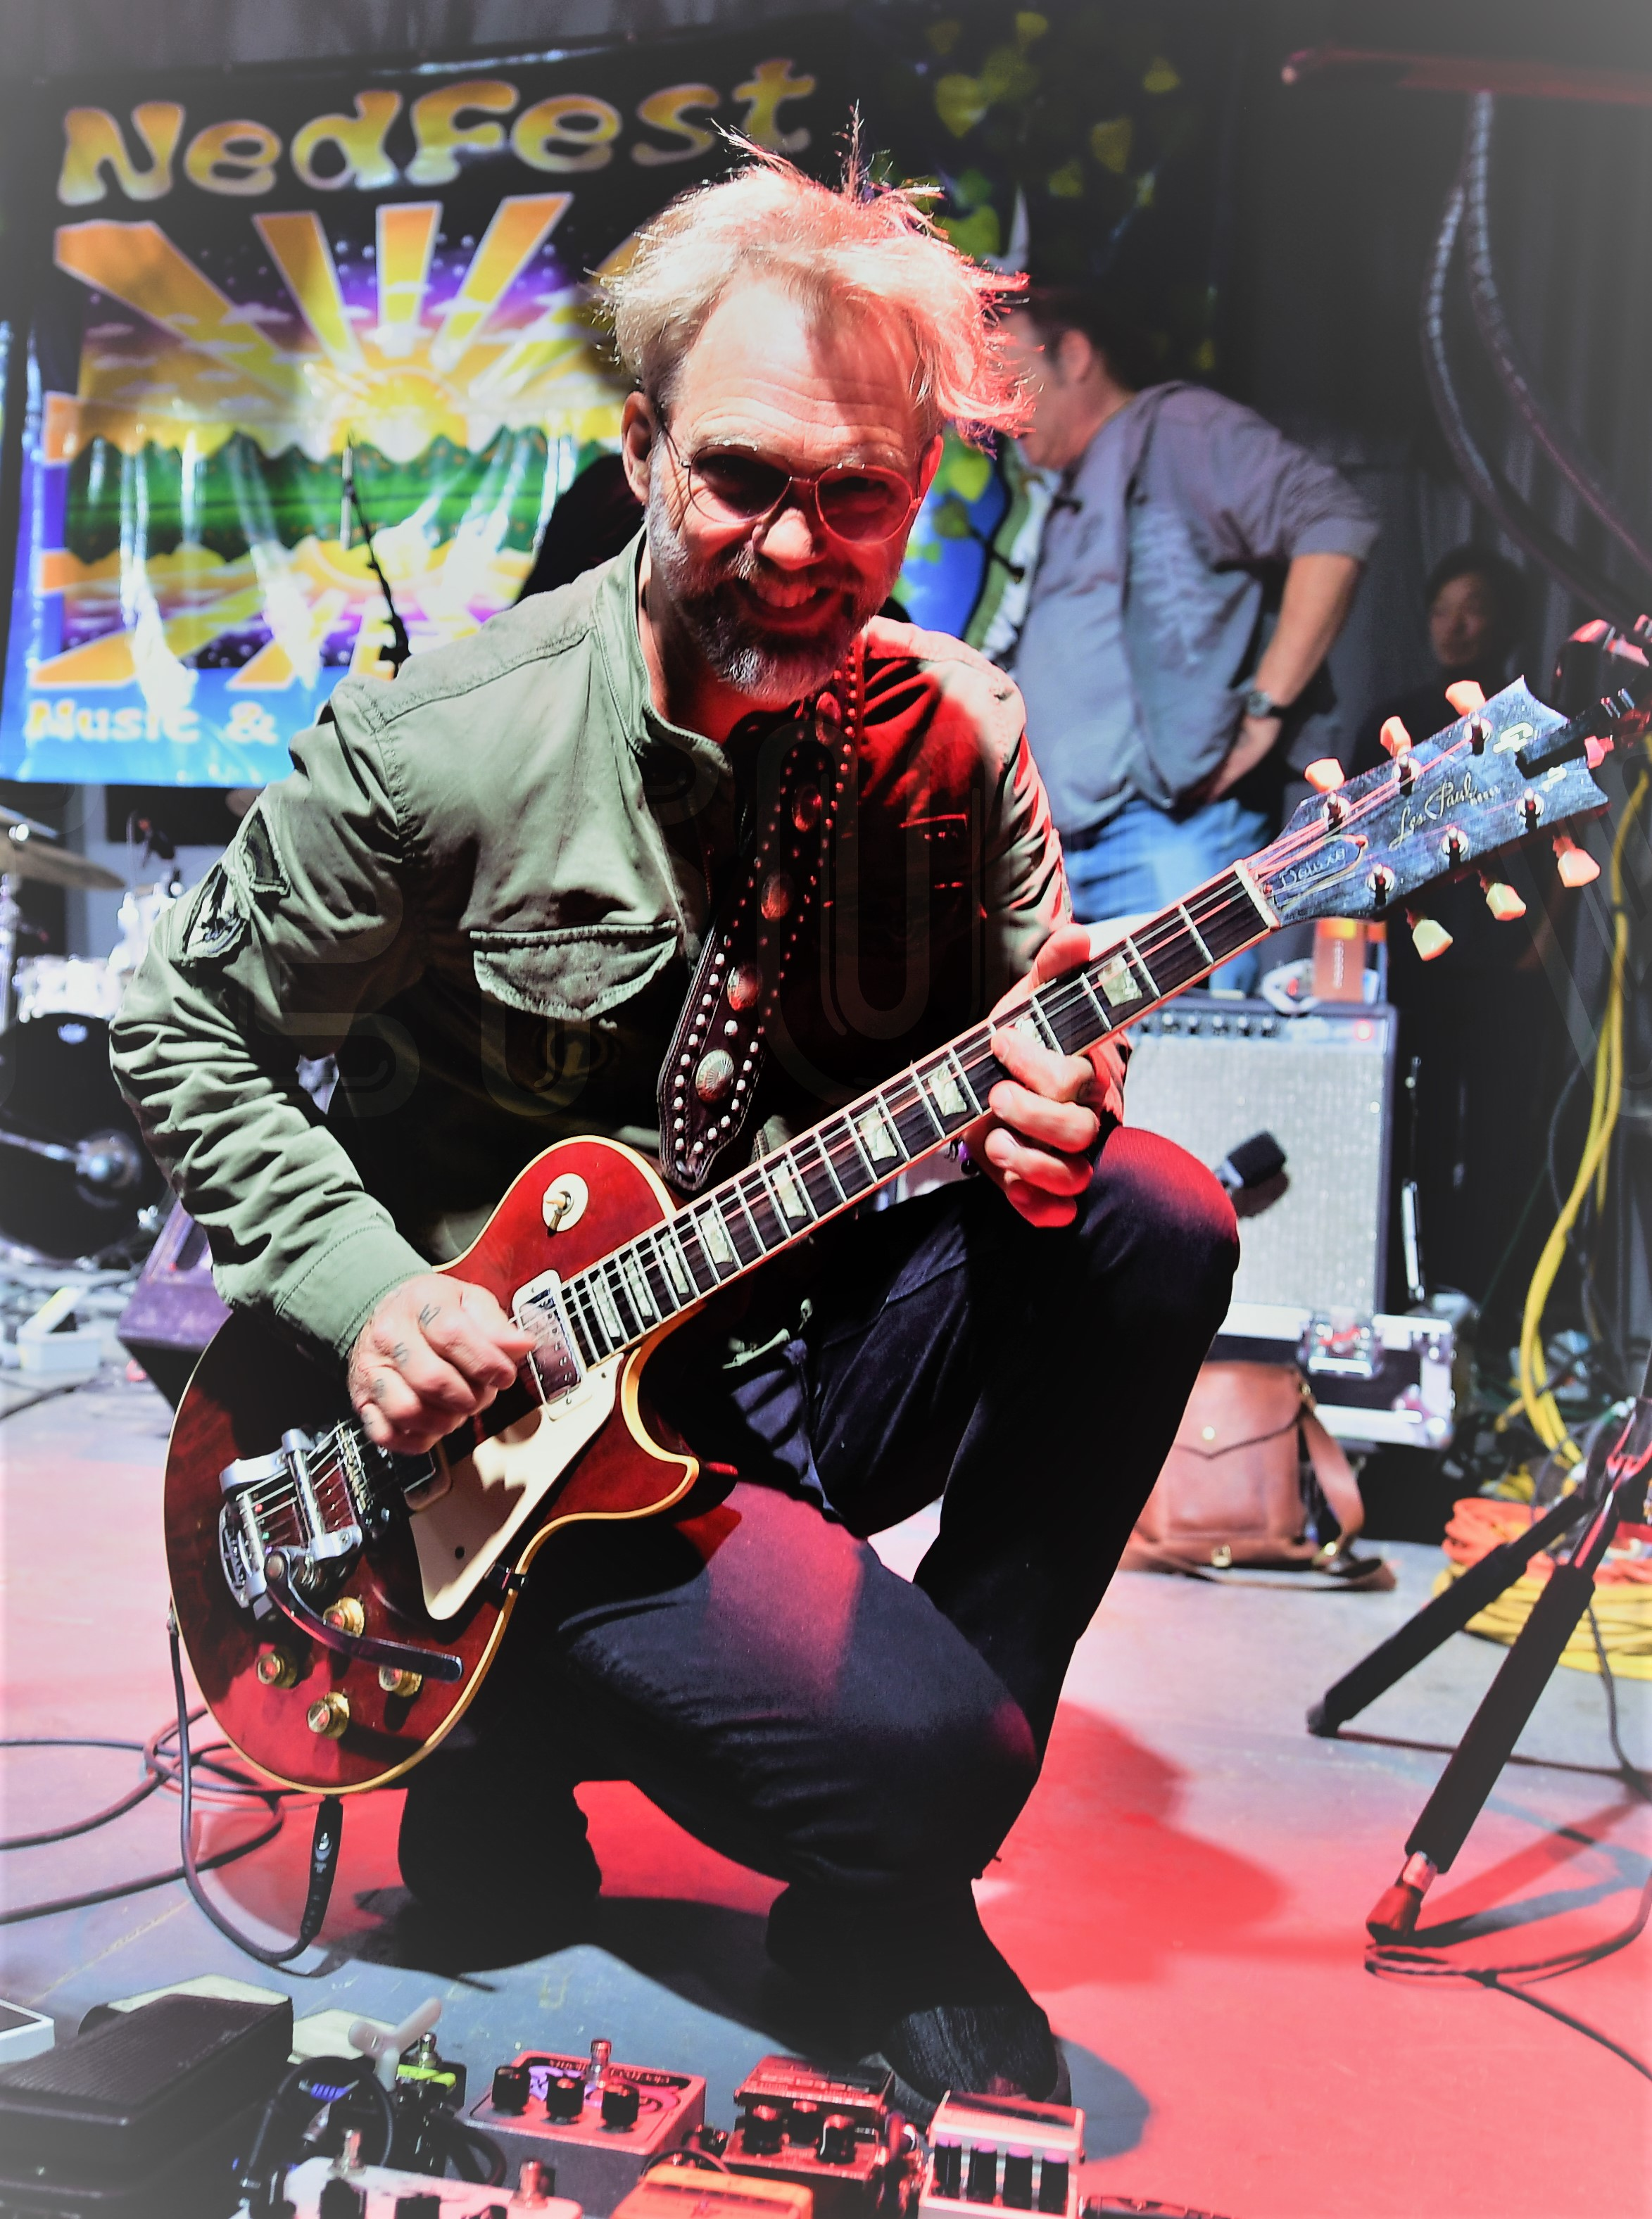 Anders Osborne - photo by moran